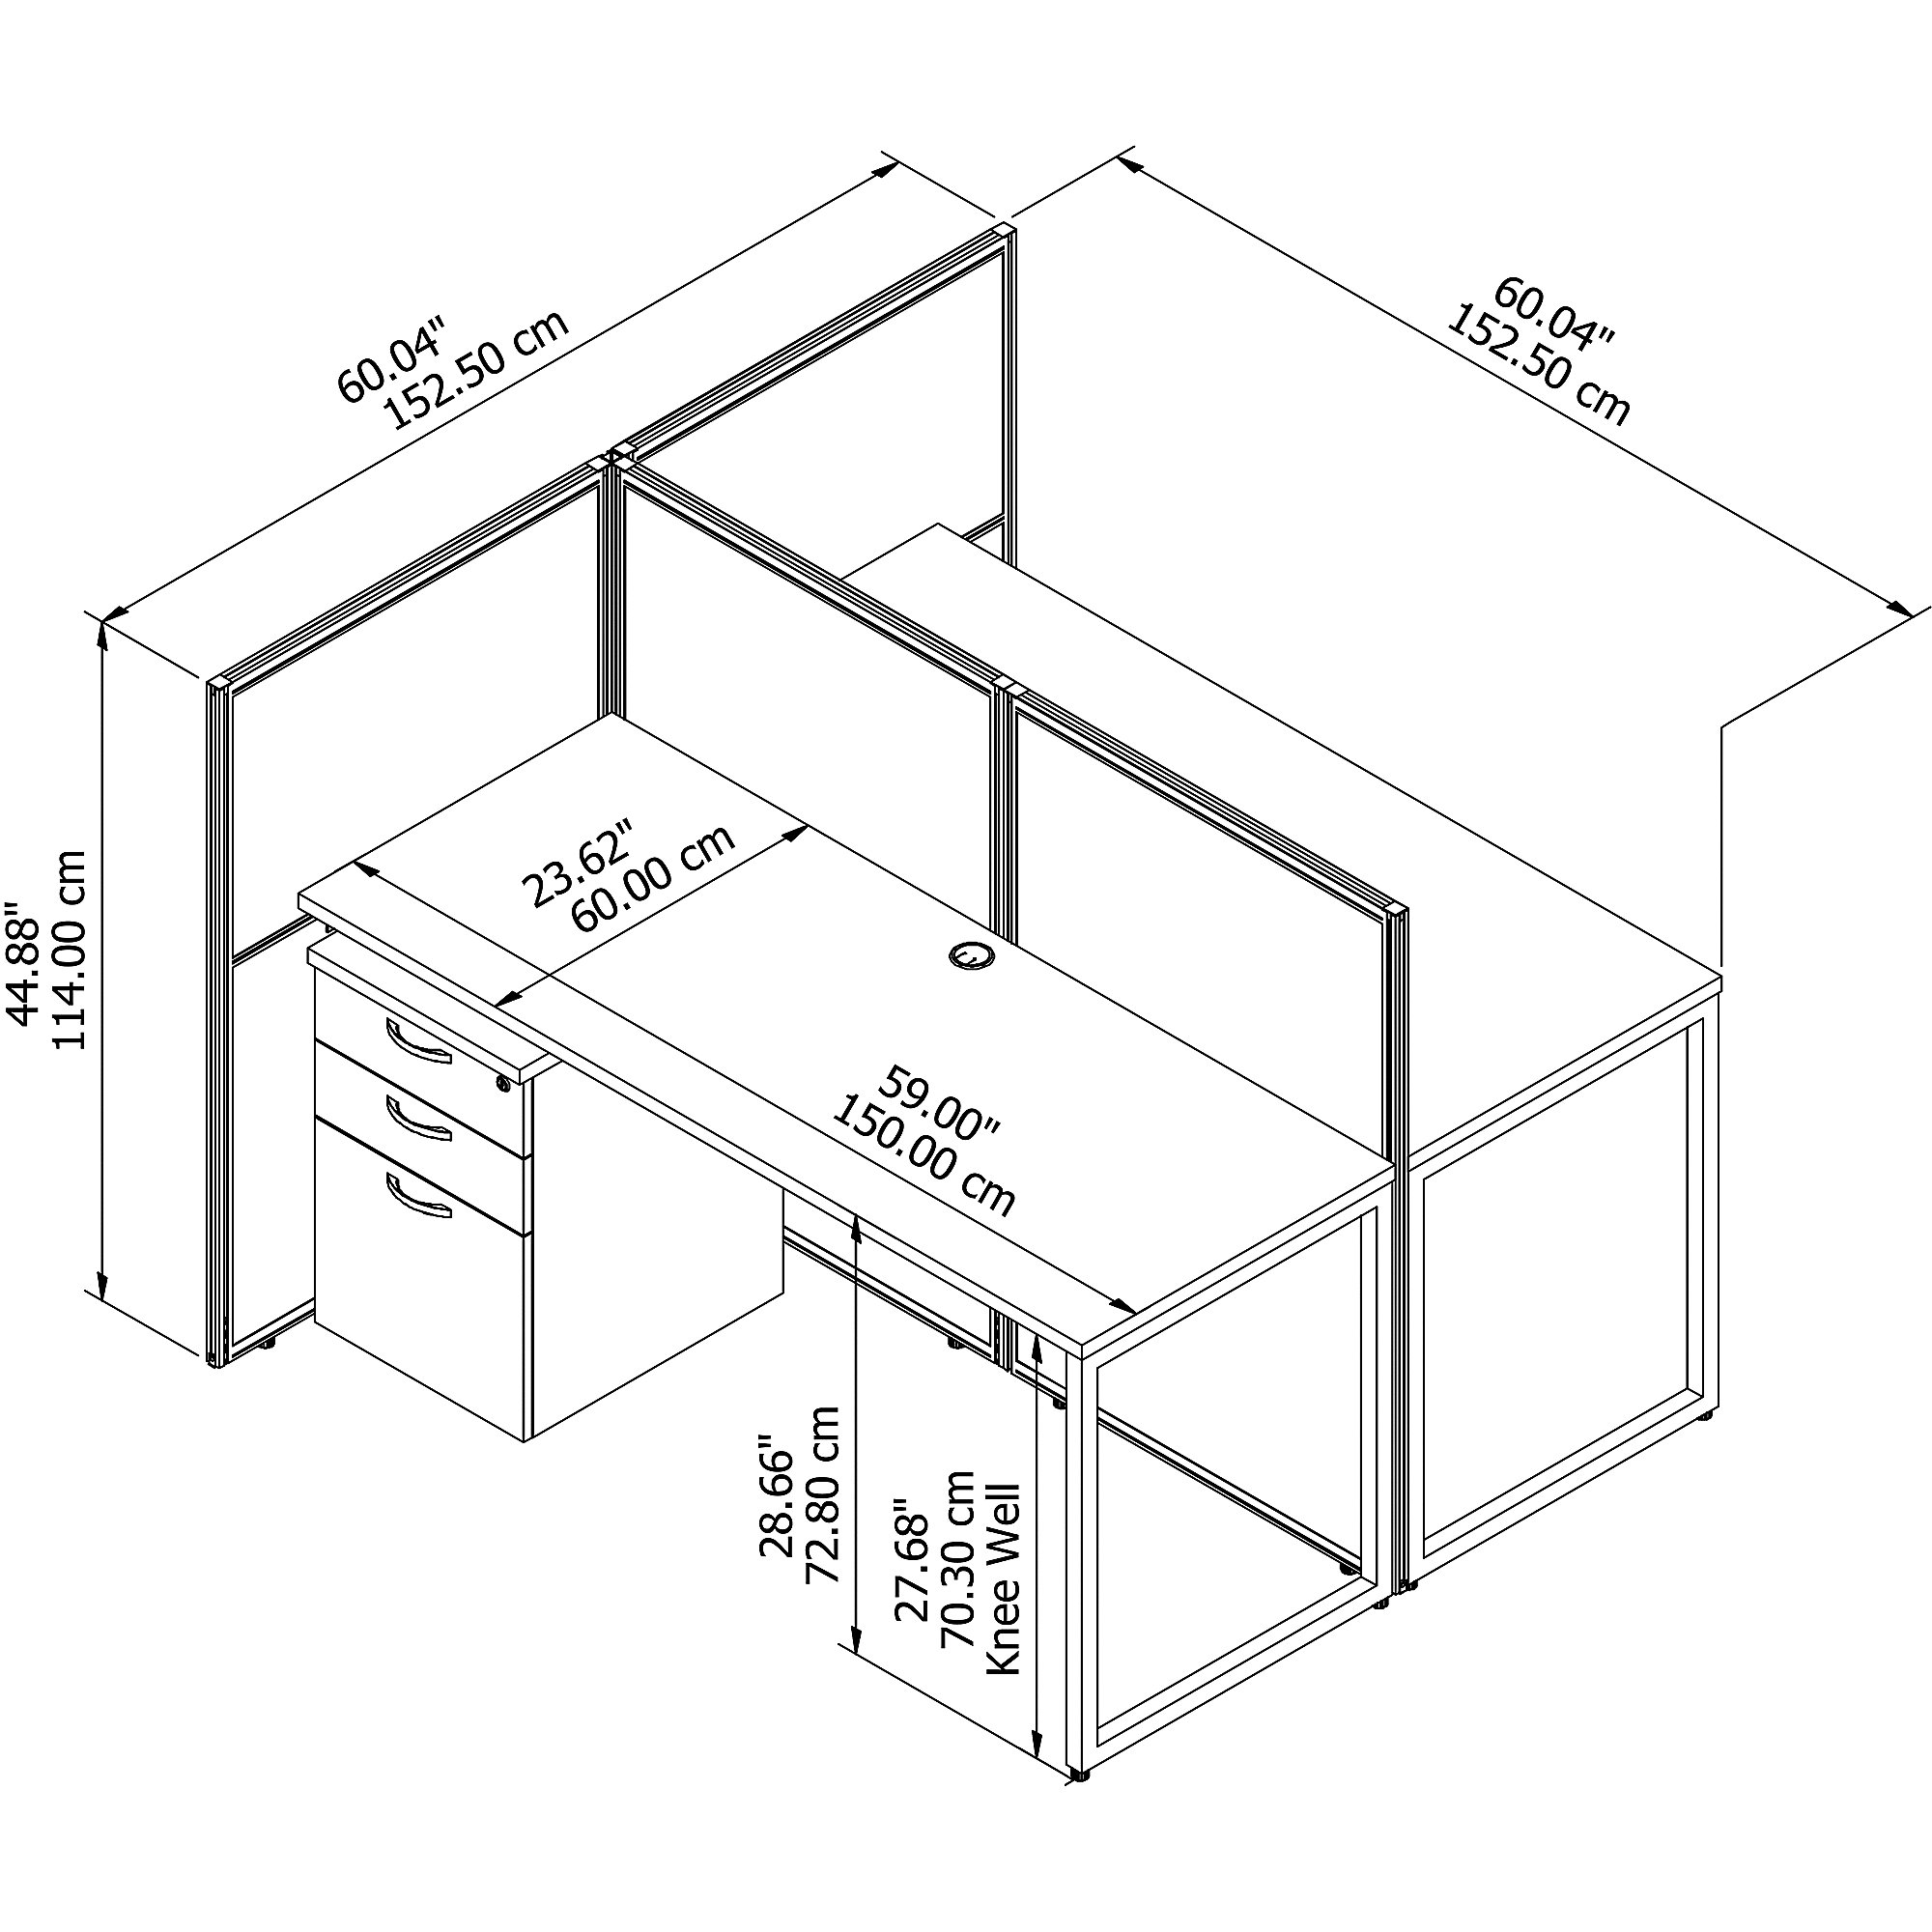 easy office white 2 person cubicle dimensions